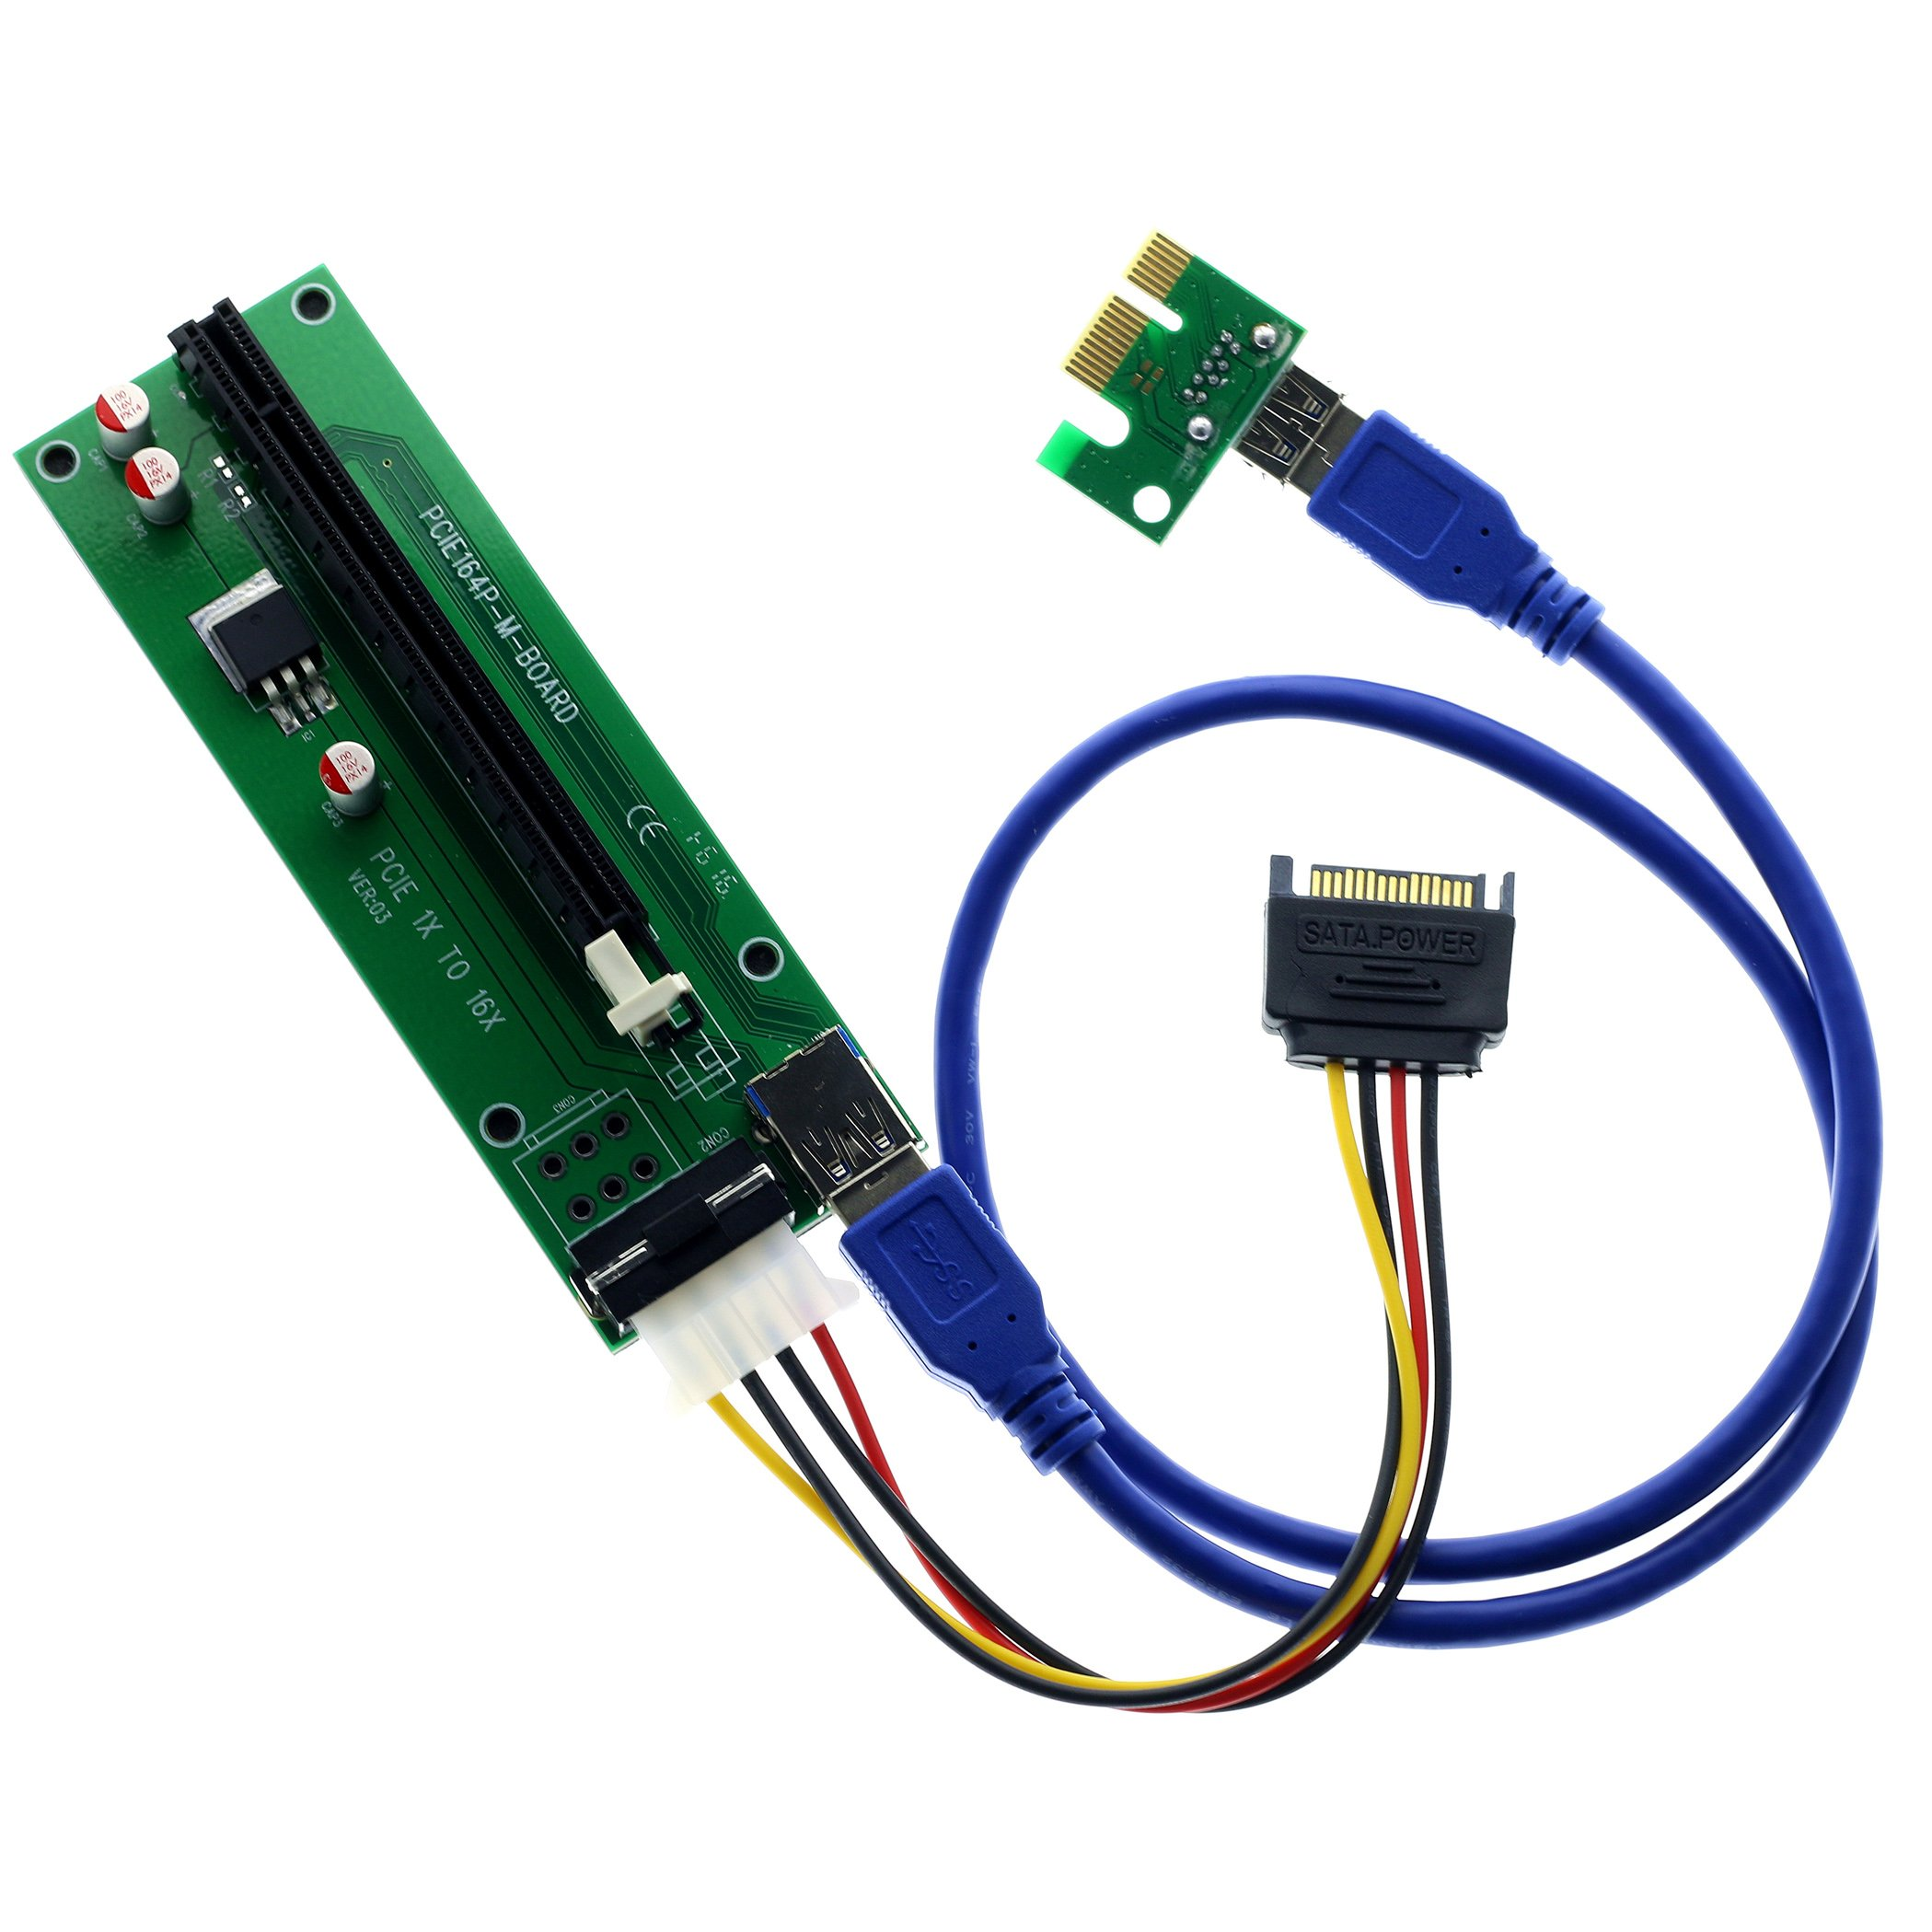 Cheap Pci 32x Riser Adapter With Flex Cable Find E 1x To 16x Extender Card 4 Solid Capacitor Get Quotations Techinthebox Express Powered Usb 30